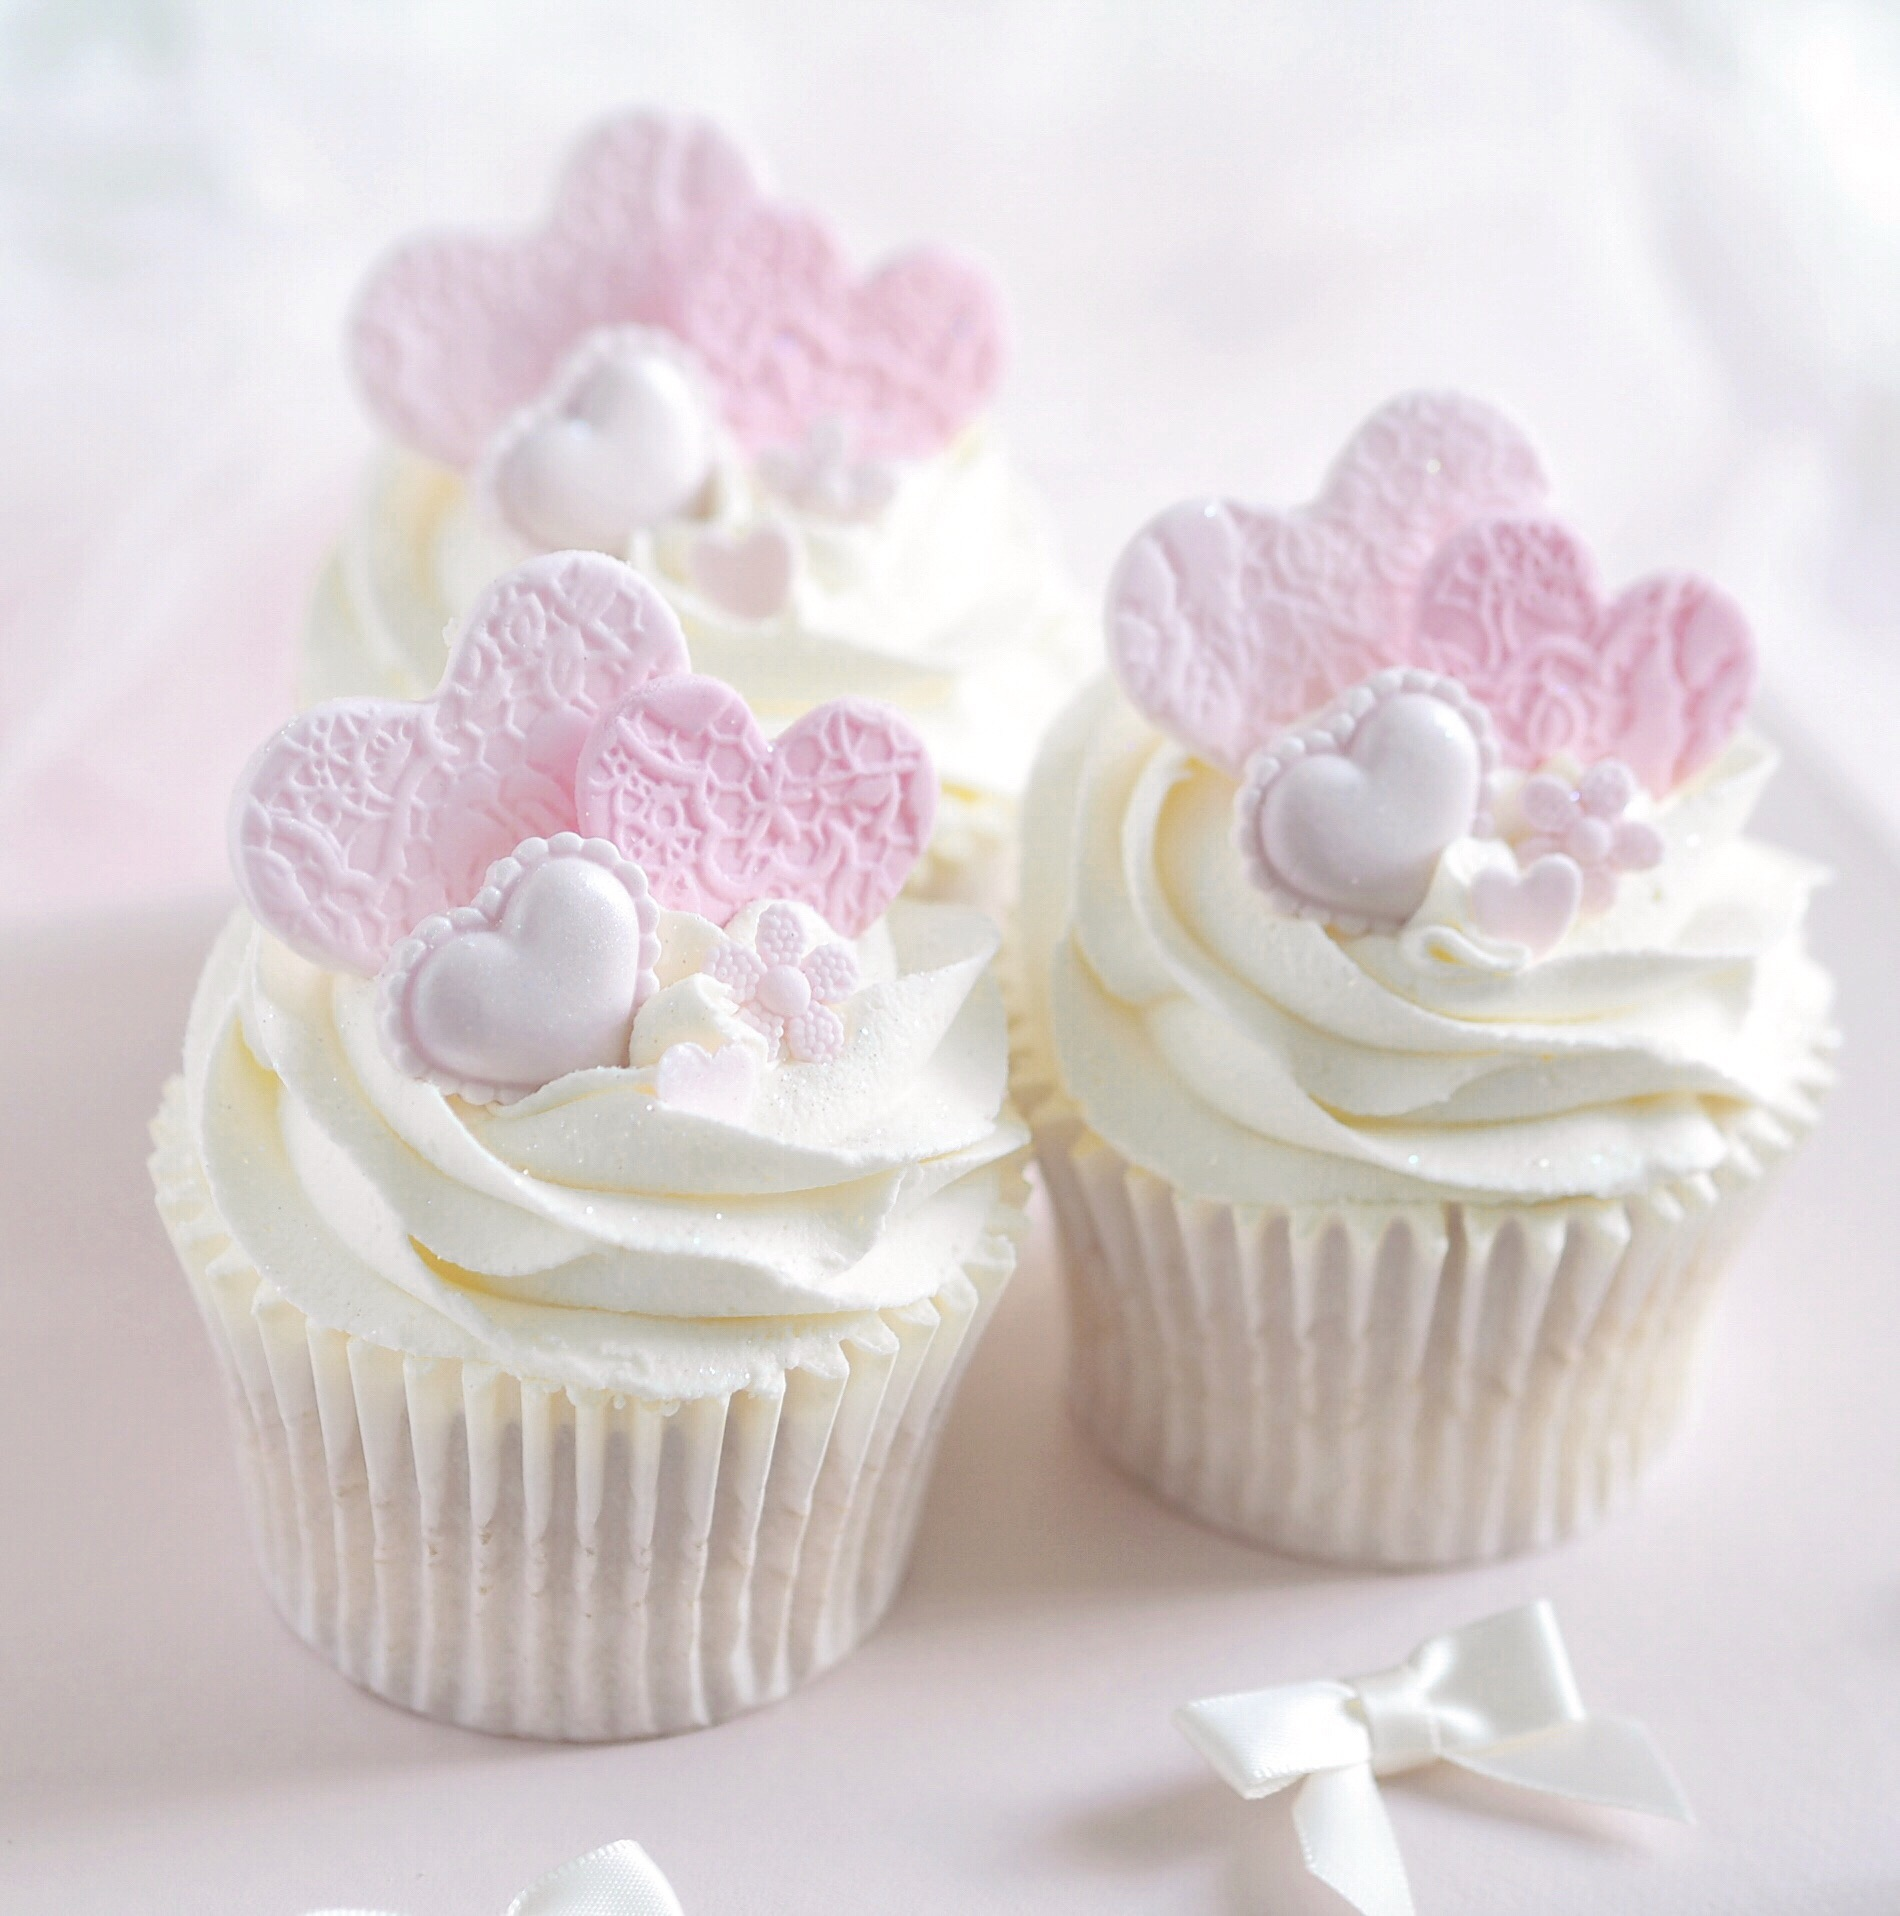 8 Sweet Ideas For Your Valentine's Baking ~ Lace Heart Cupcakes